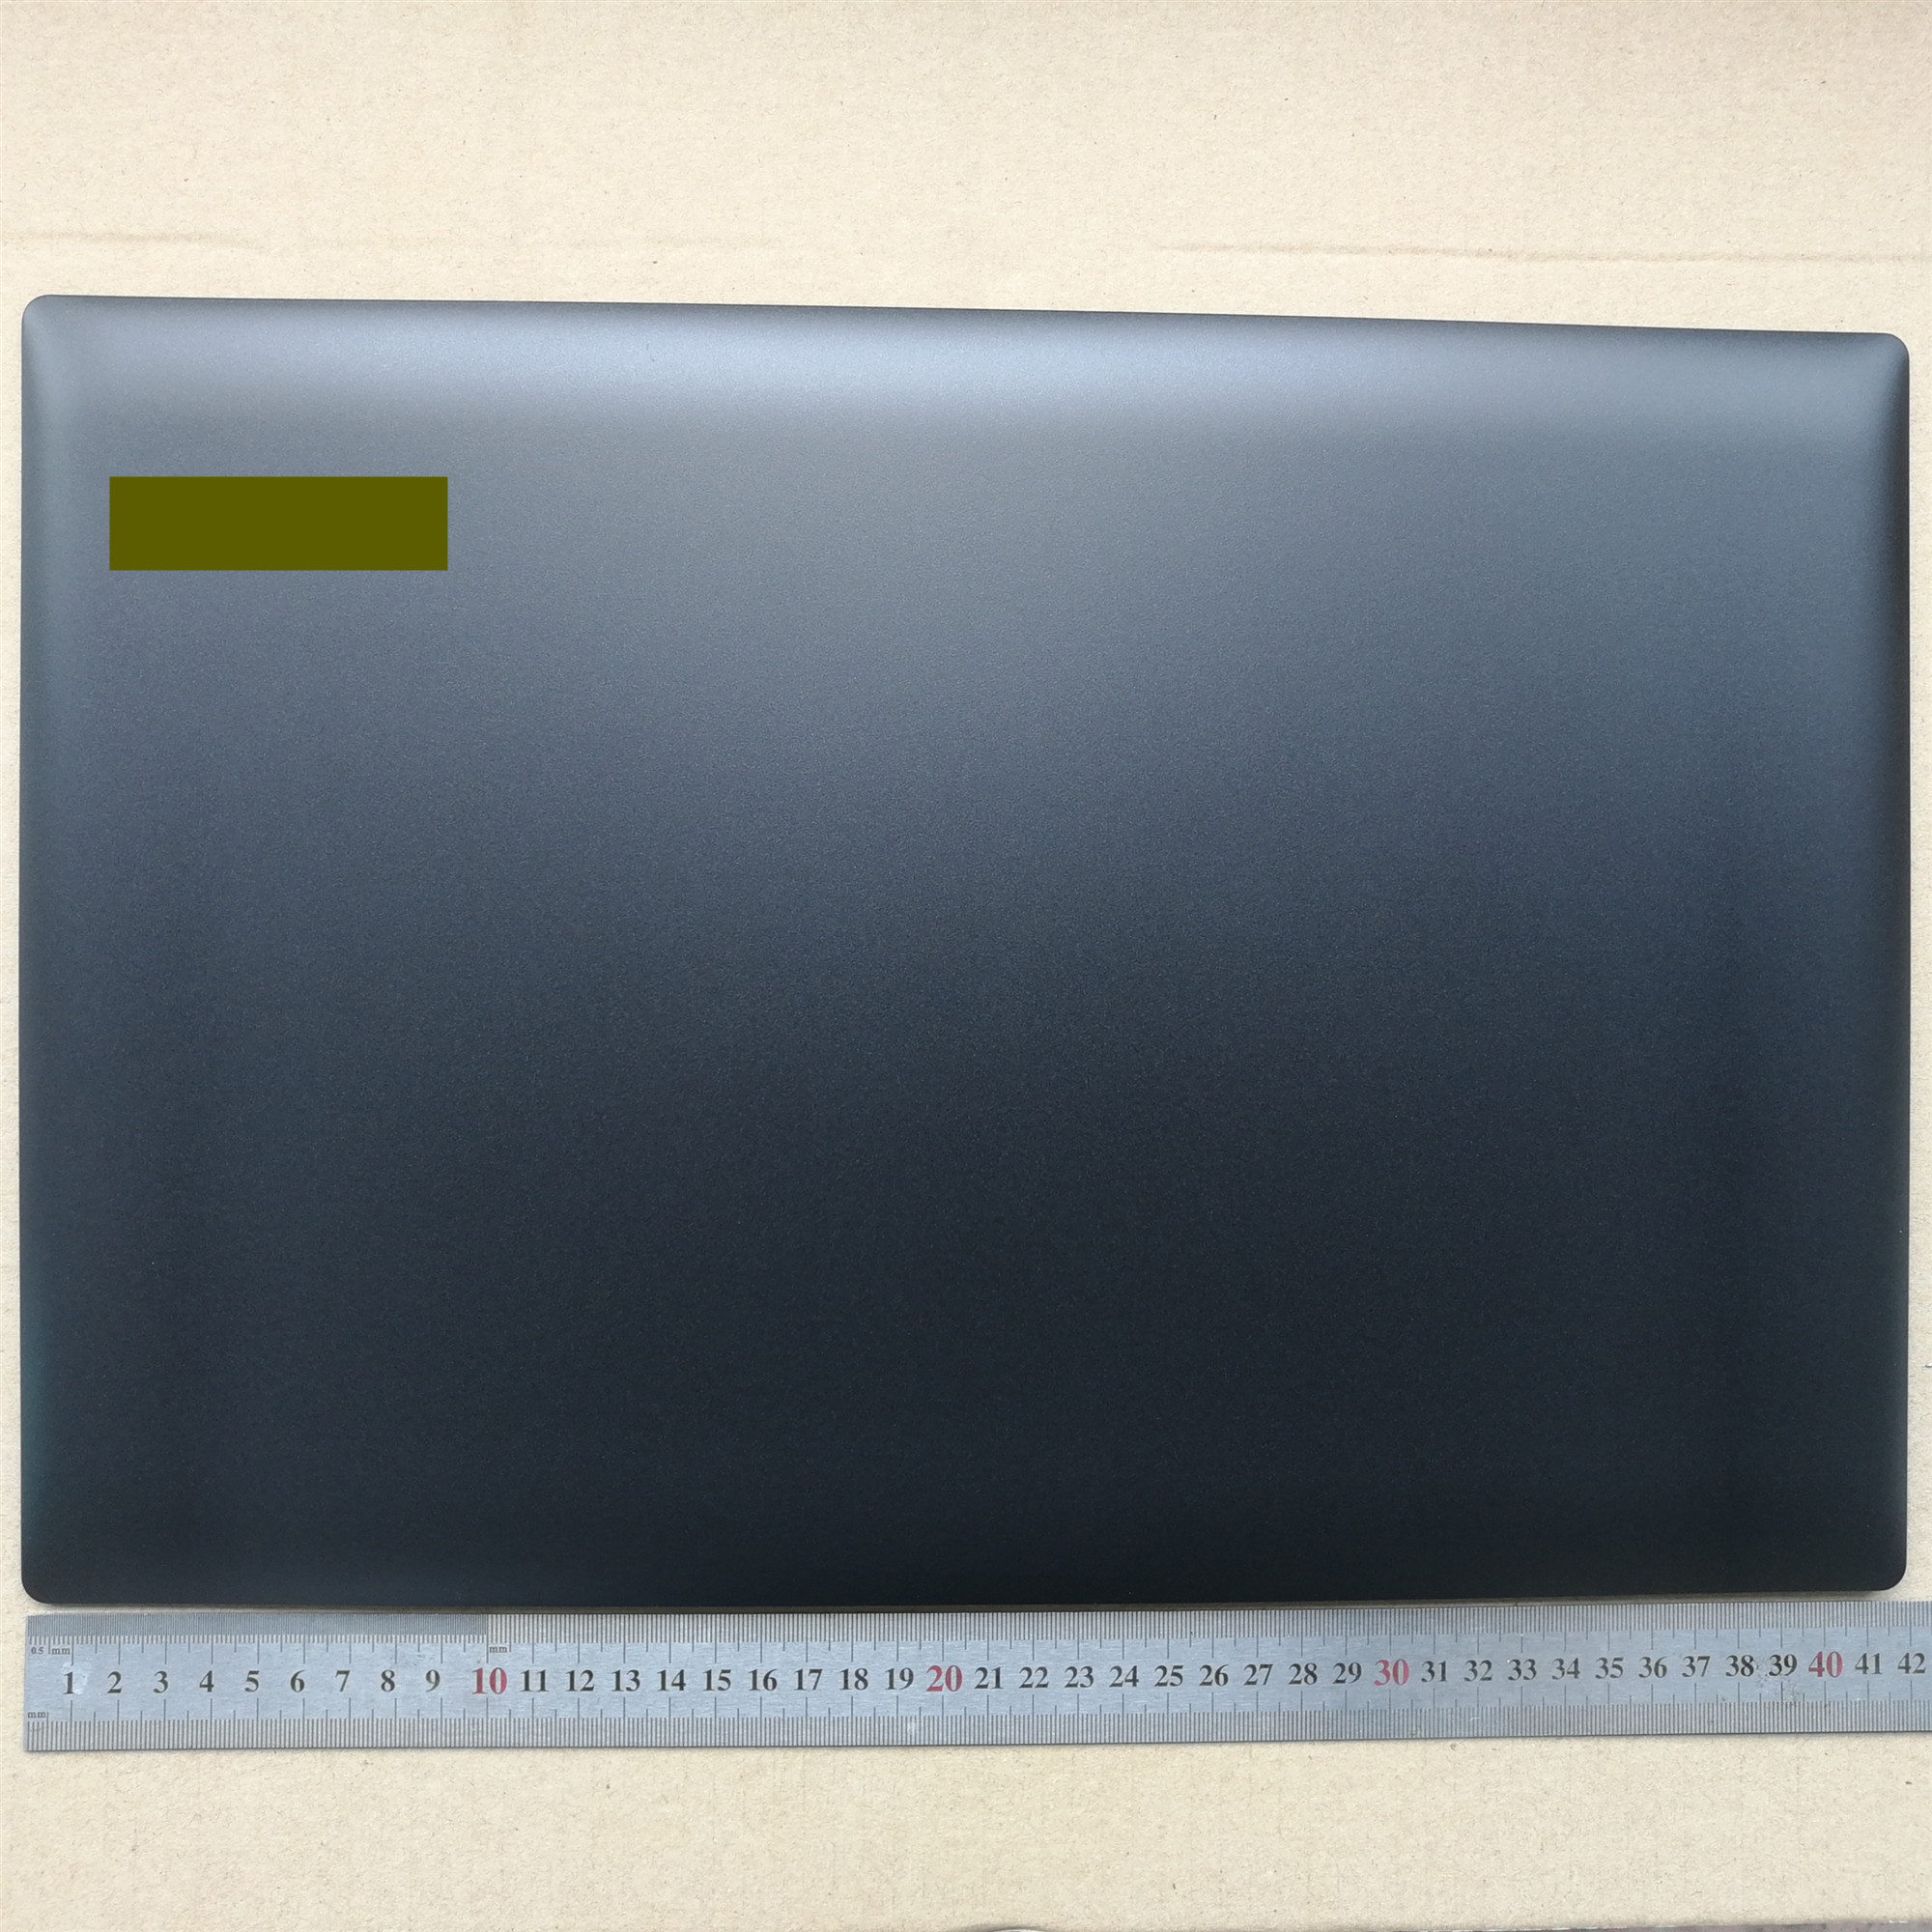 New Lenovo IdeaPad 320-15 320-15IKB 15ISK Top Case LCD Back Cover Front Bezel